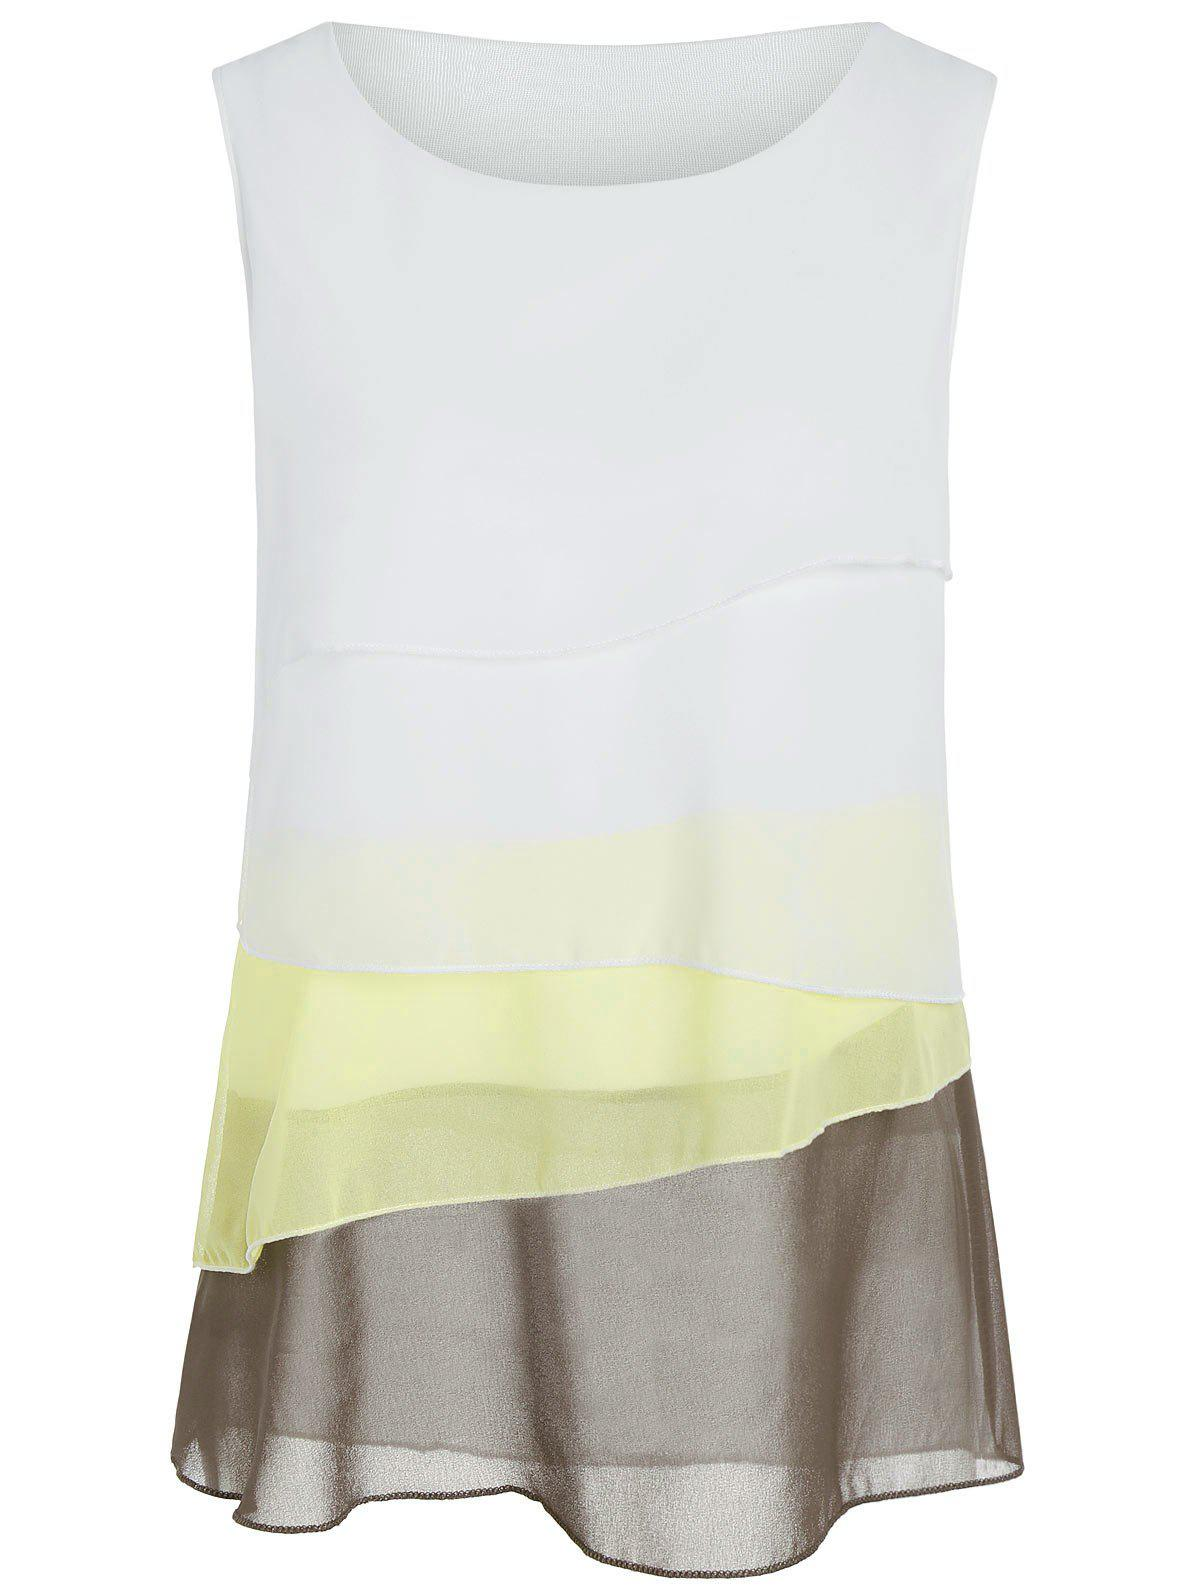 Ombre Color Layered Sheer Chiffon Tank Top tefal k 0910204 talent